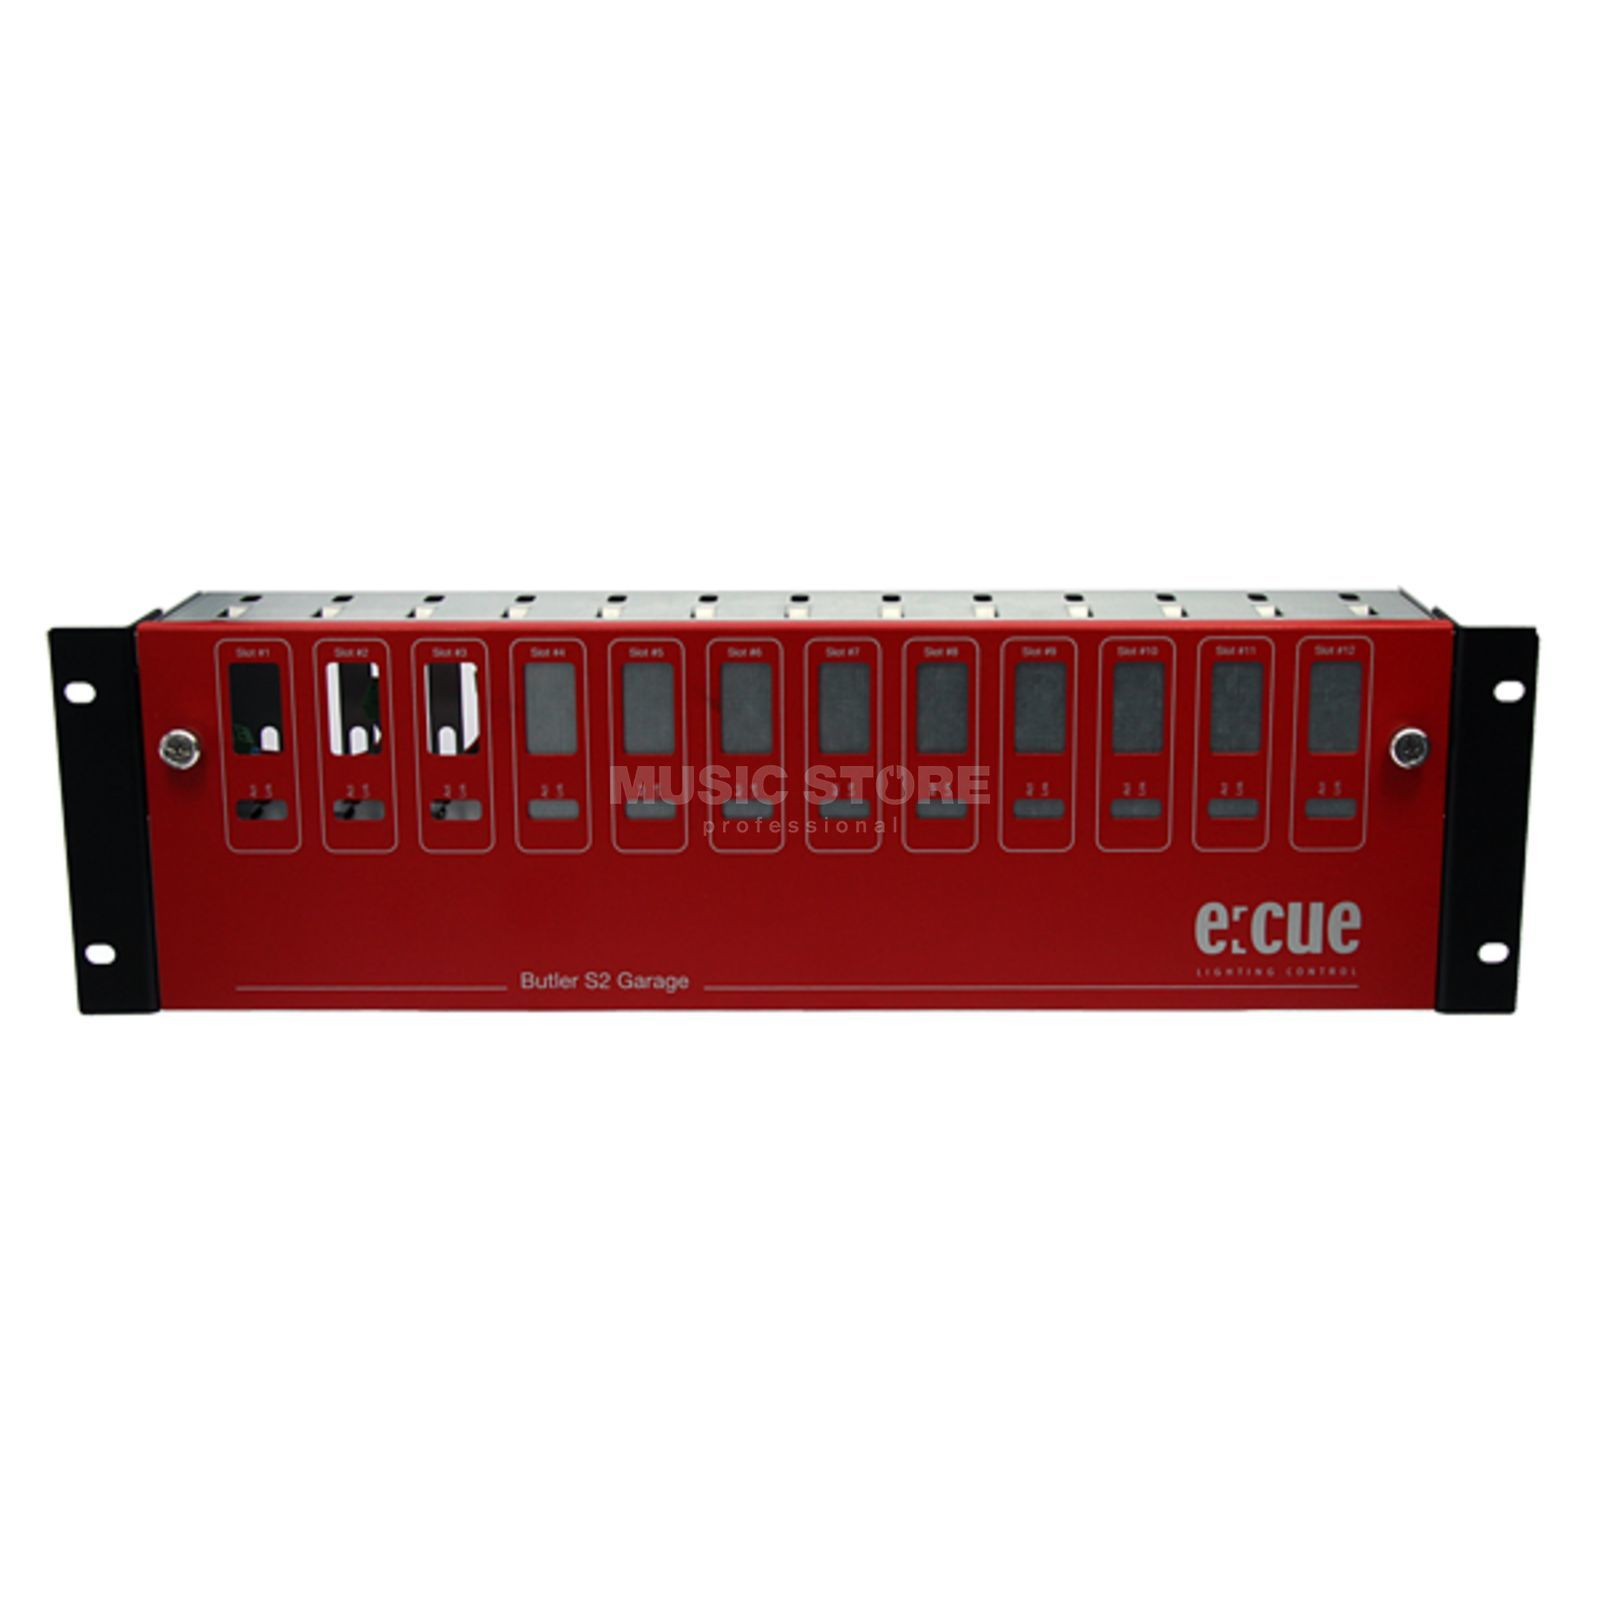 "e:cue Butler Garage 19"" Rack Mount Housing Product Image"